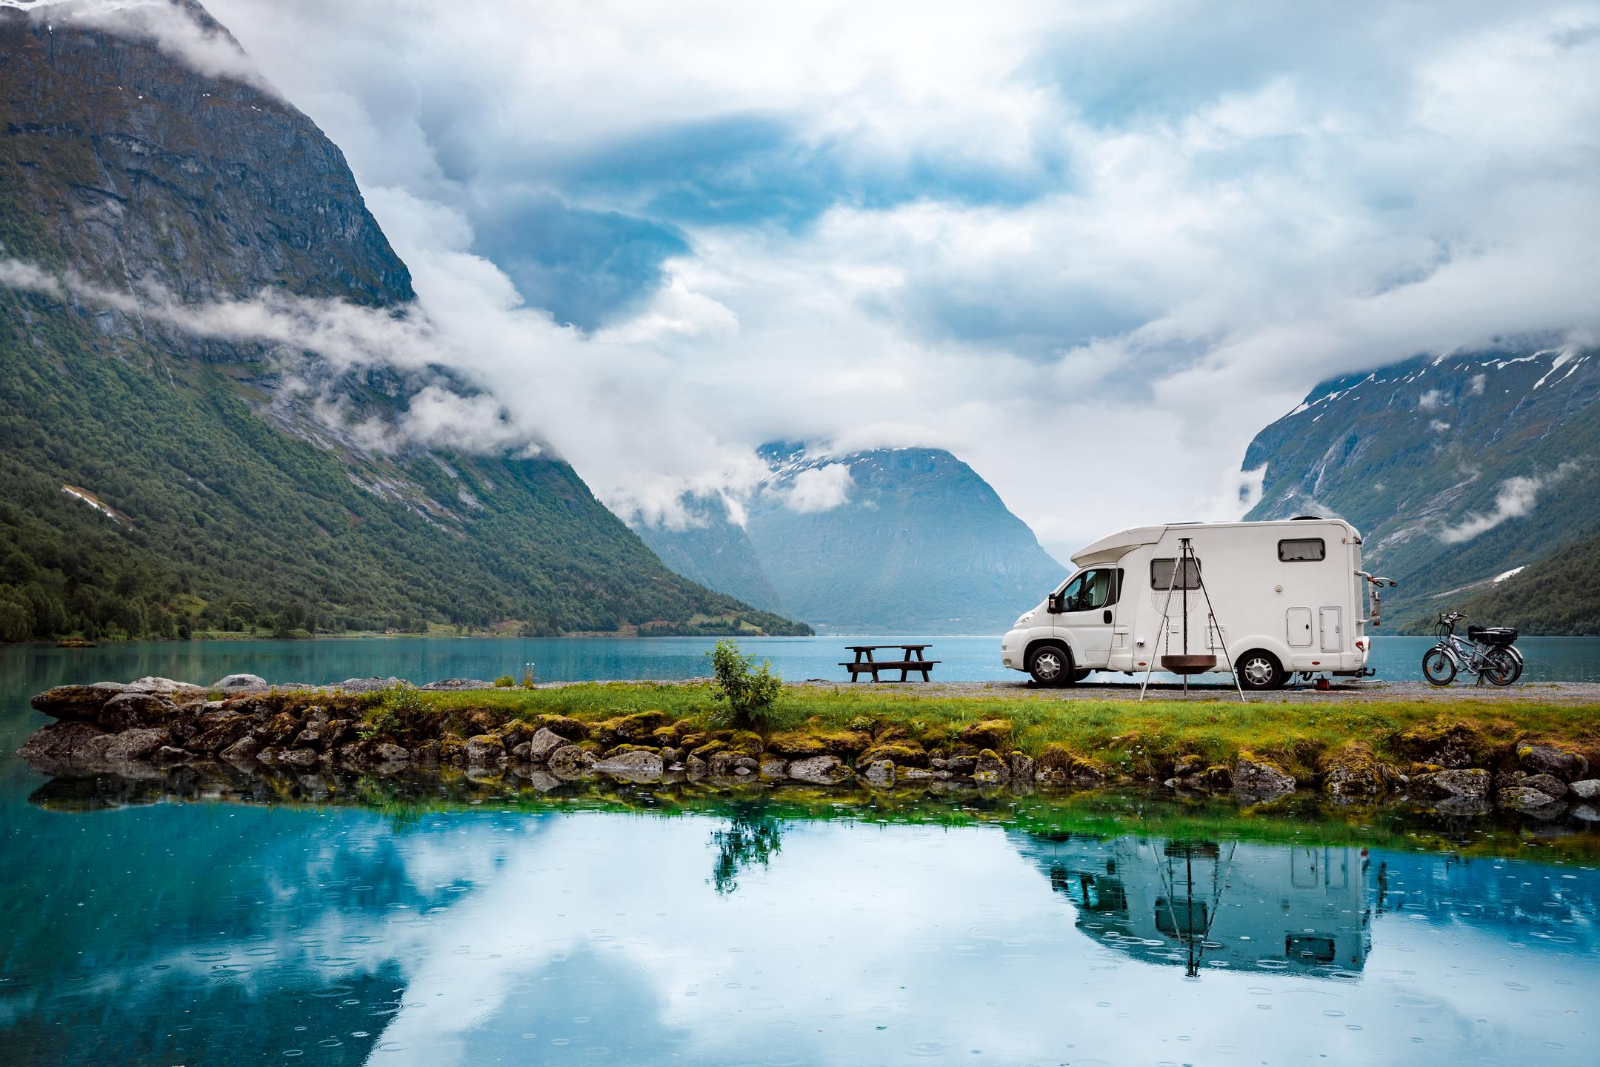 Get Paid $1000 to Go Camping Without Internet